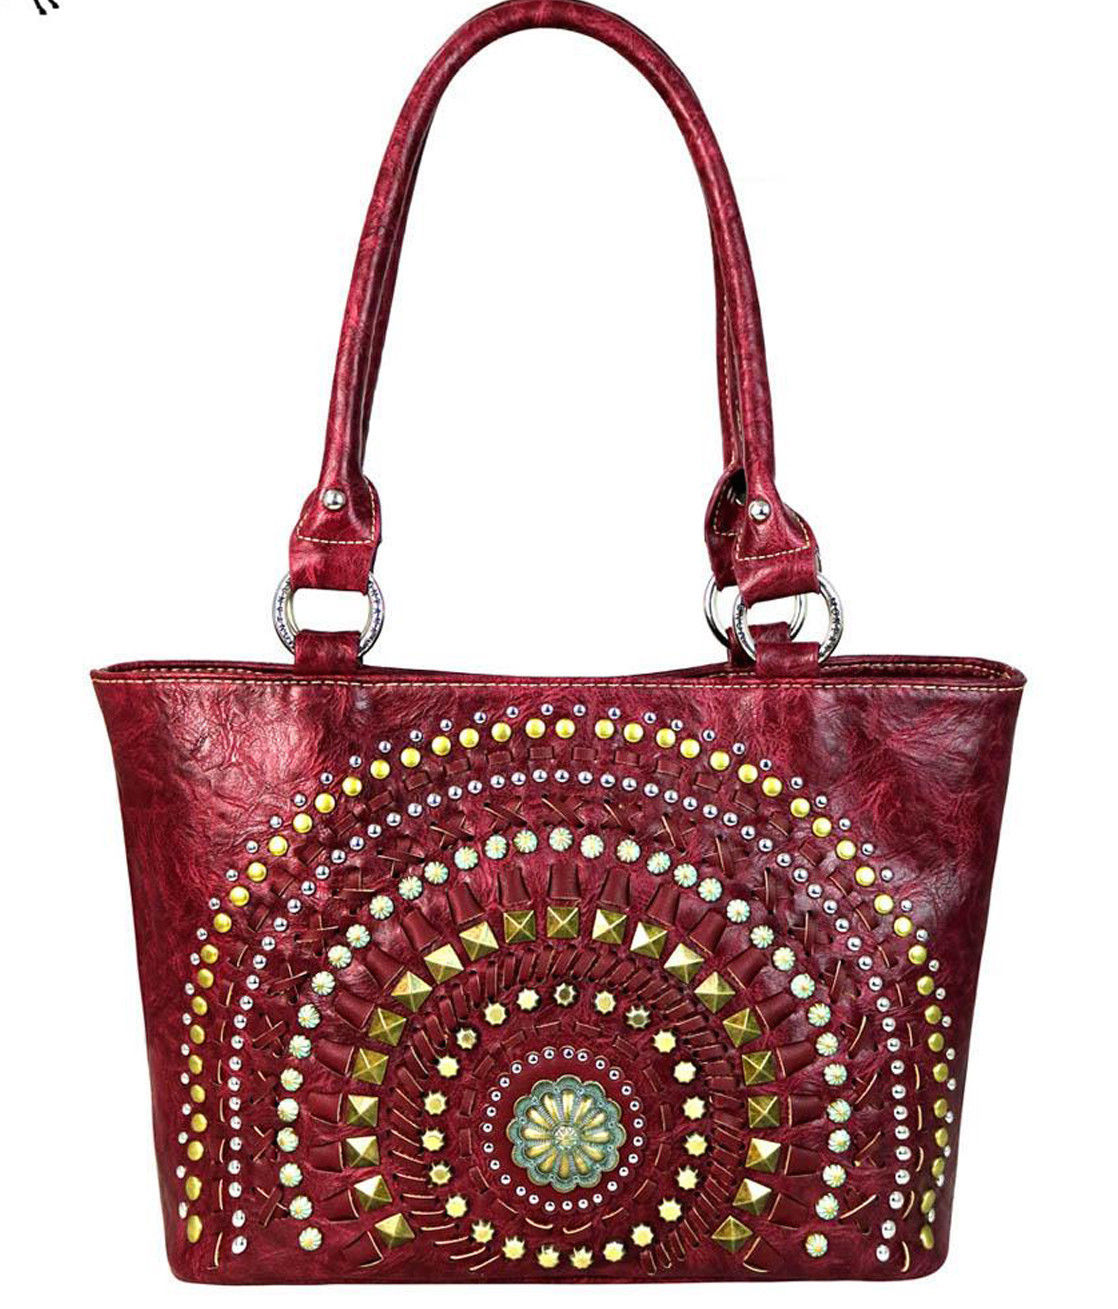 Western Studded Concho Shoulder Purse Handbag Burgundy Red Montana West